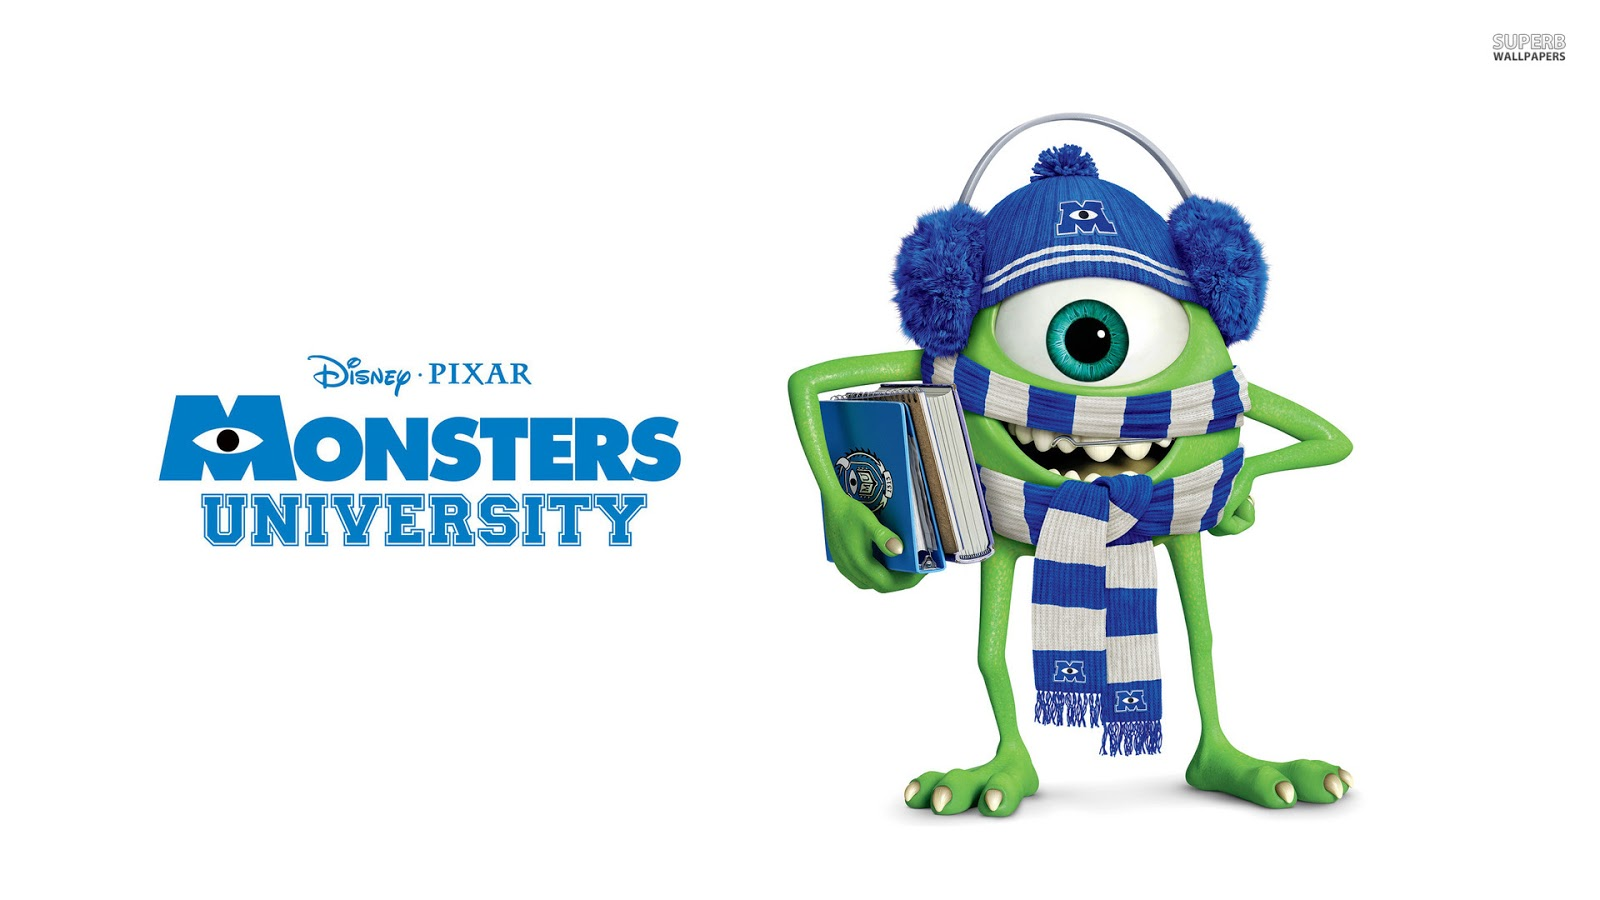 http://3.bp.blogspot.com/-vfd9fm6IrjY/UVeFmj9UtvI/AAAAAAAAdDY/-pTIaeu5ae8/s1600/mike-wazowski-monsters-university-18119-1920x1080.jpg